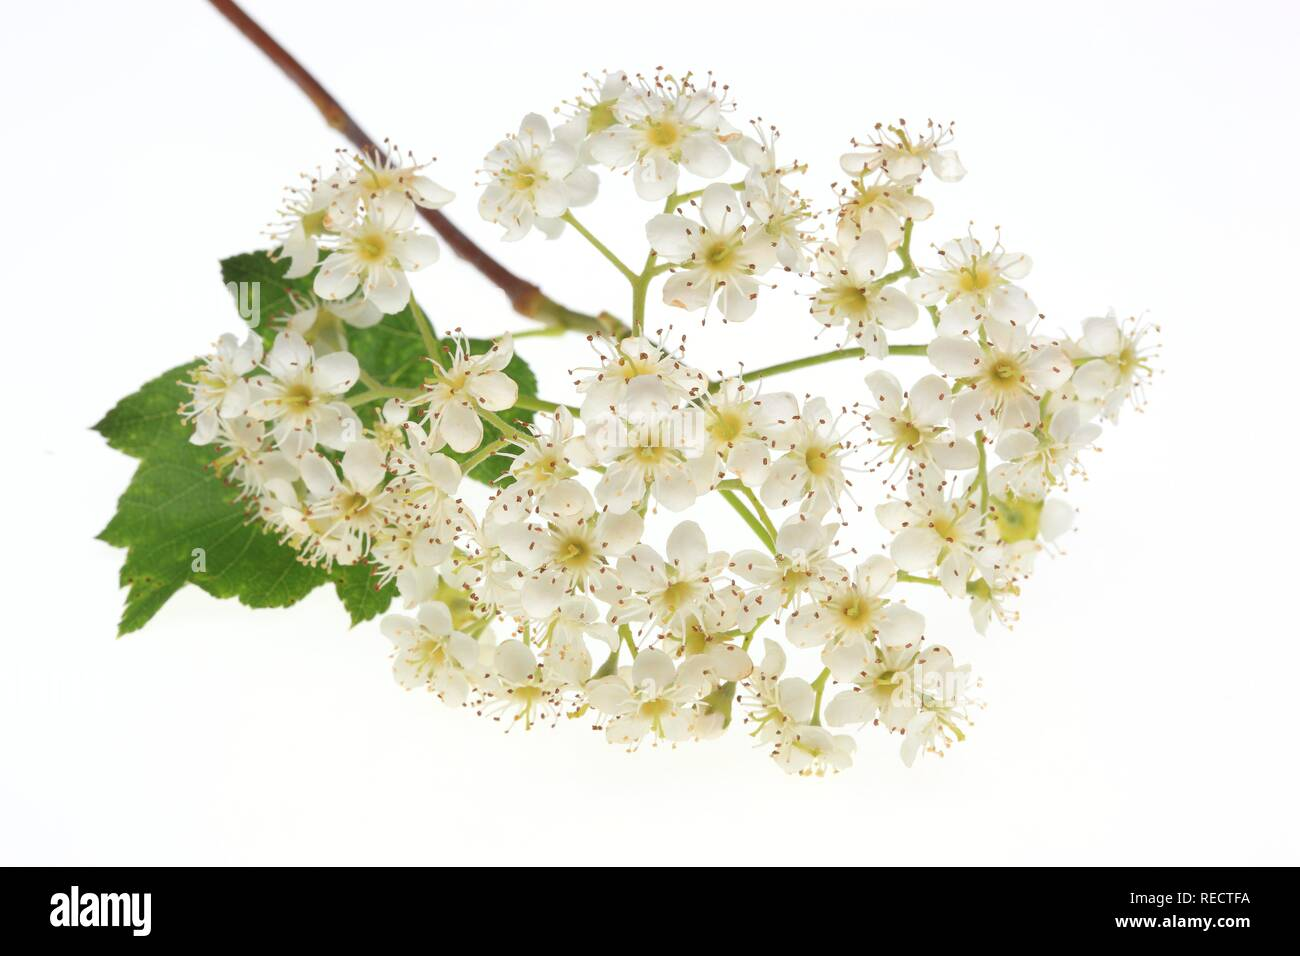 Blossoms of the tree Wild Service Tree, Chequer Tree or Checkers Tree (Sorbus torminalis) Stock Photo